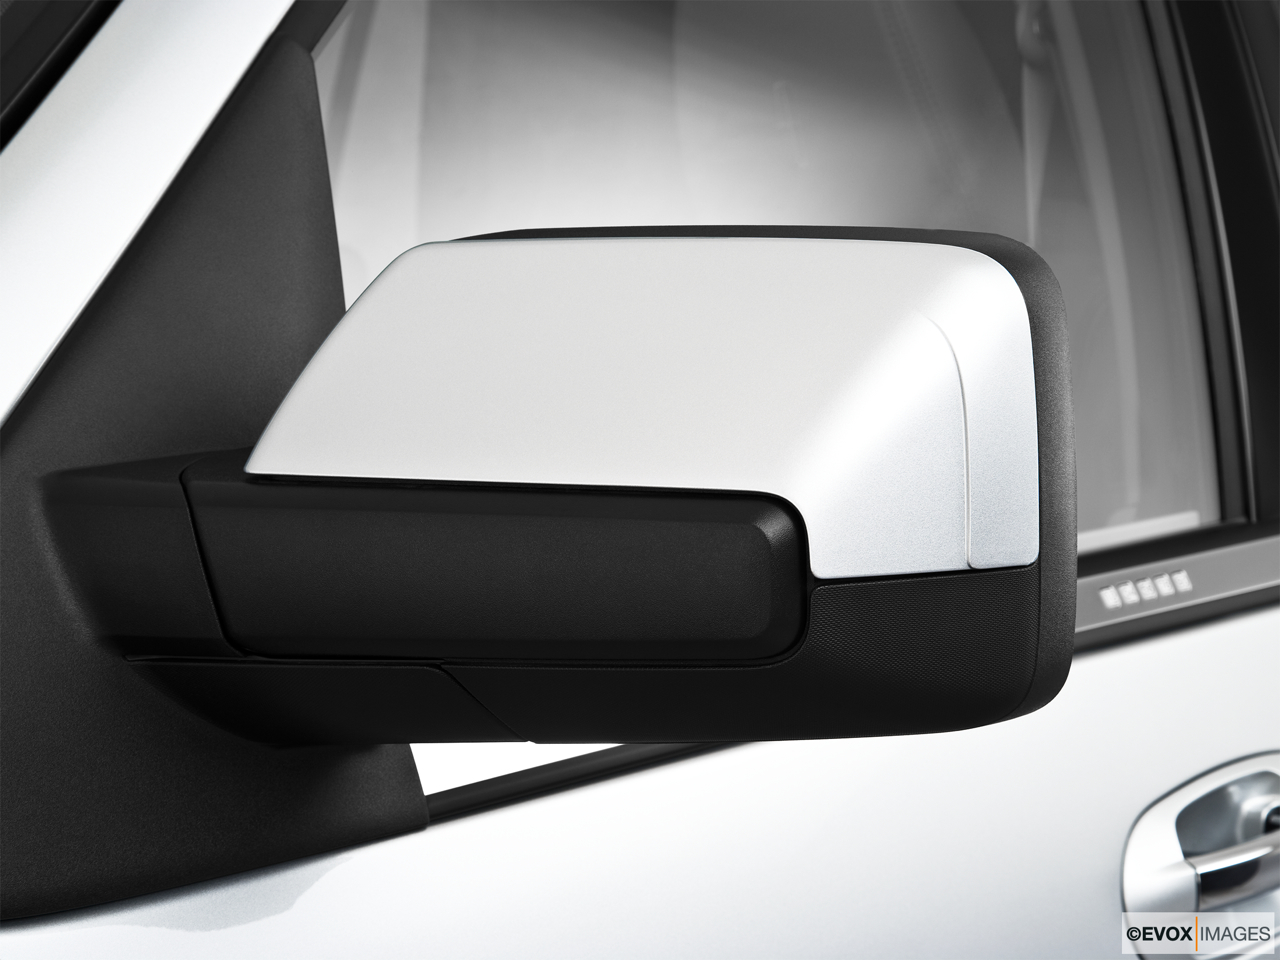 2010 Lincoln Navigator Base Driver's side mirror, 3_4 rear